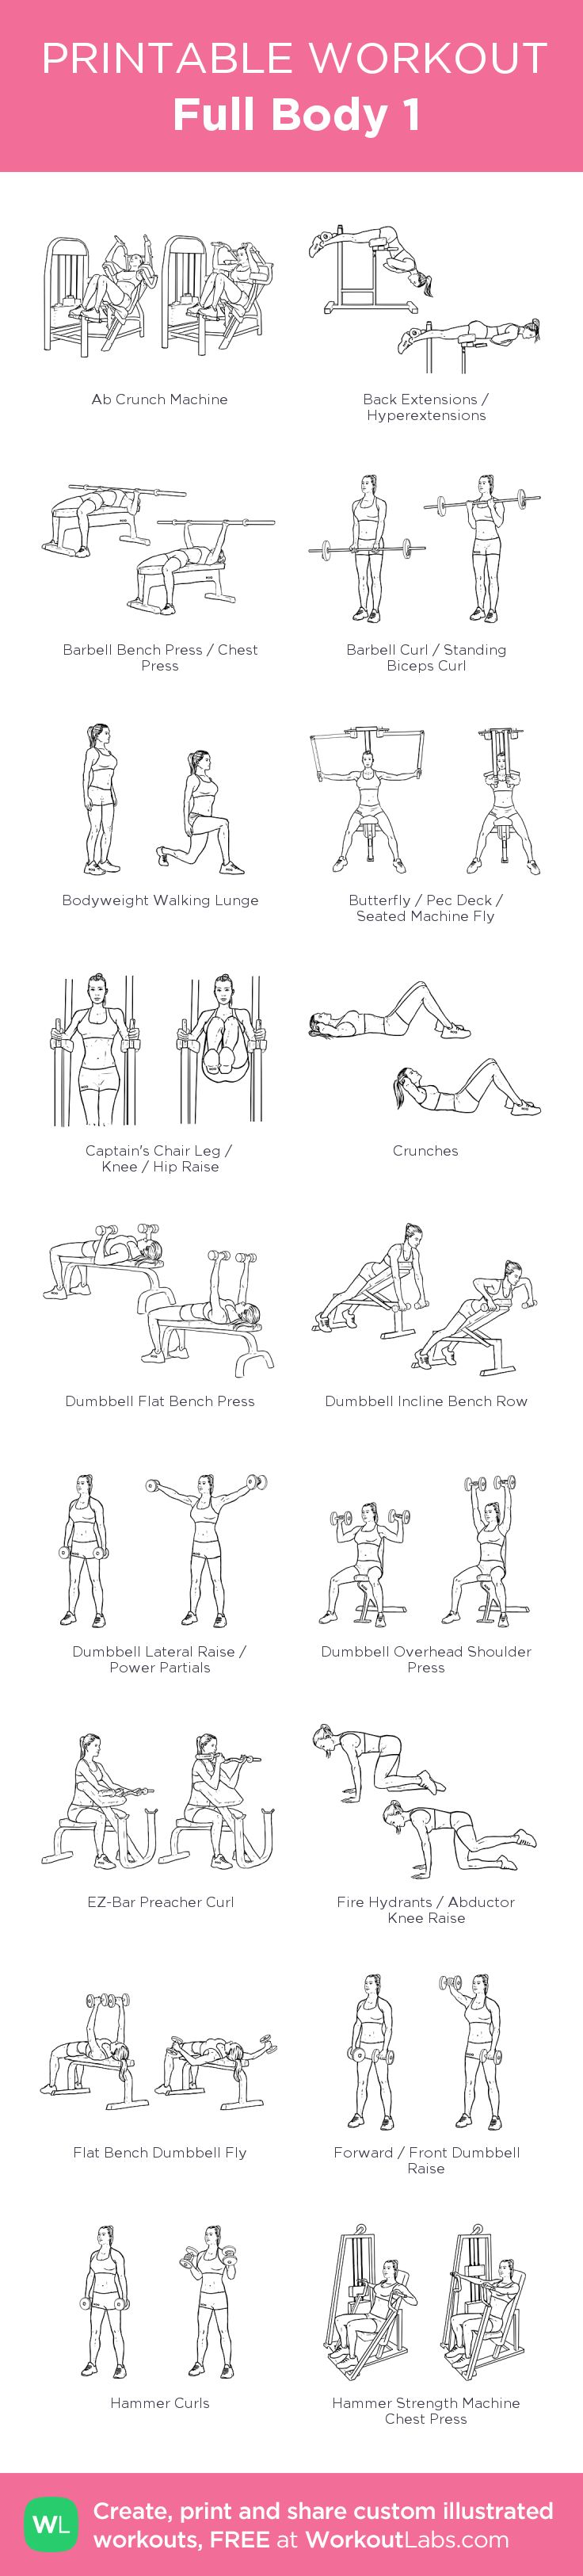 Full Body 1:my visual workout created at WorkoutLabs.com • Click through to customize and download as a FREE PDF! #customworkout                                                                                                                                                                                 More